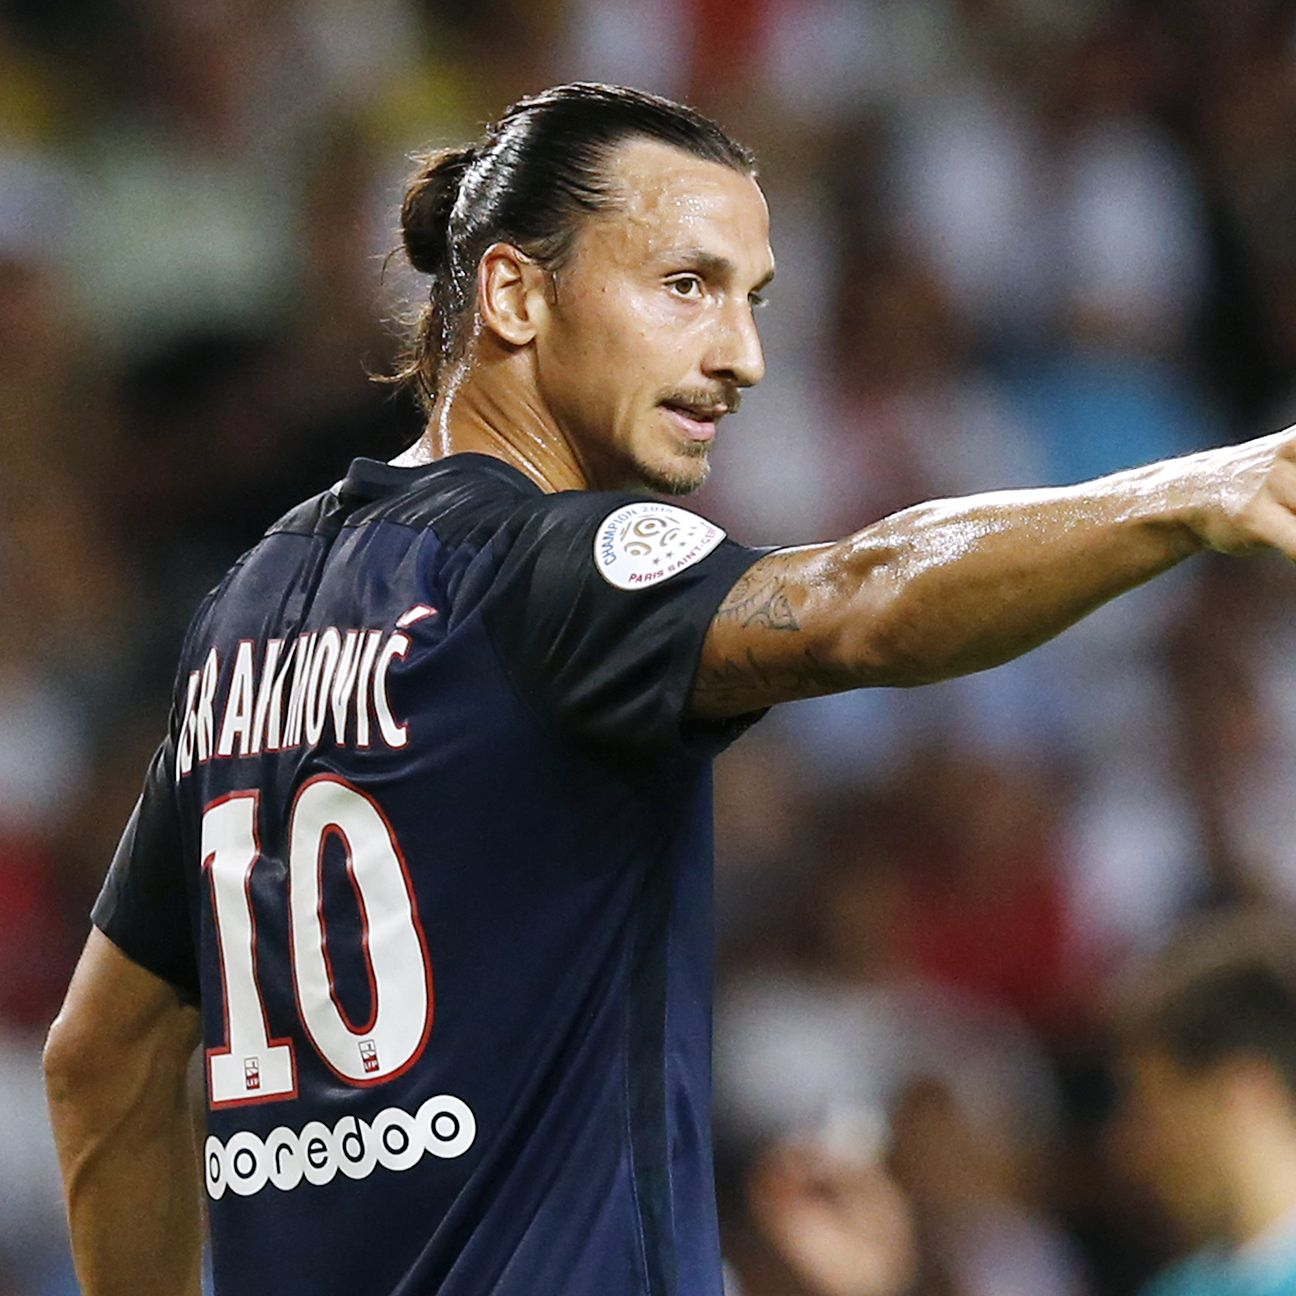 Zlatan Ibrahimovic and PSG hope to stretch their Ligue 1 lead before a midweek visit to Madrid.